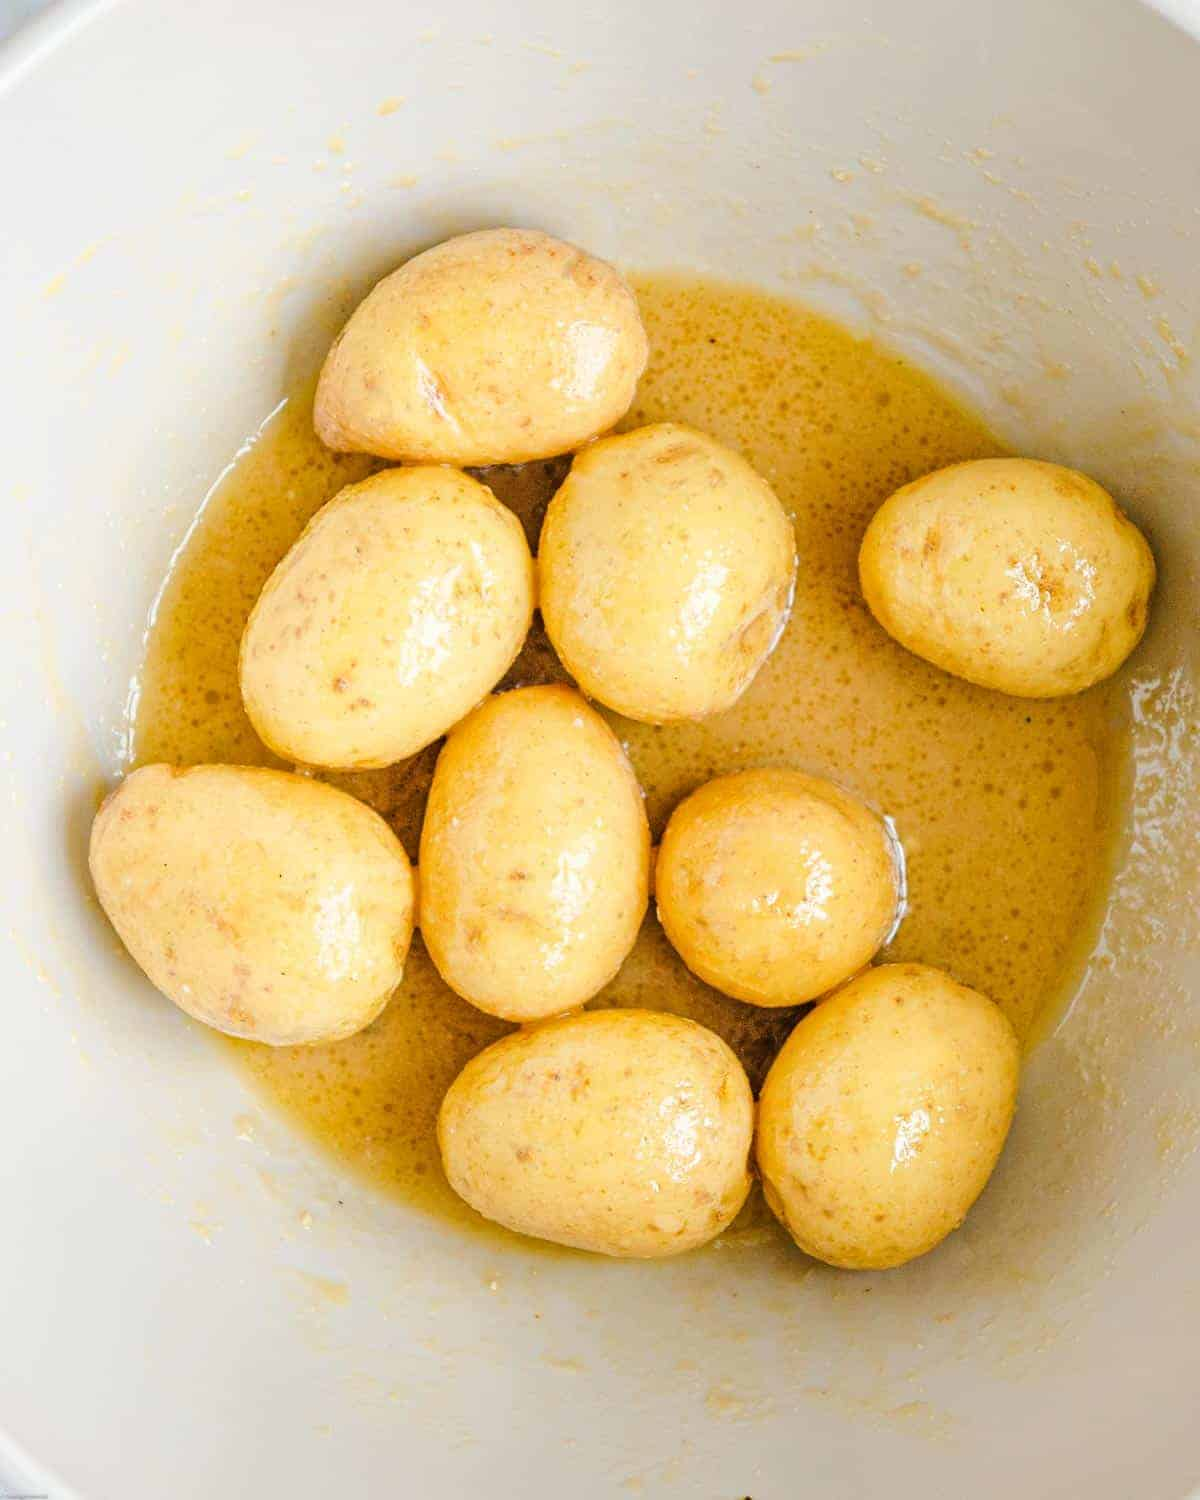 Whole baby yellow potatoes in a bowl with dressing.